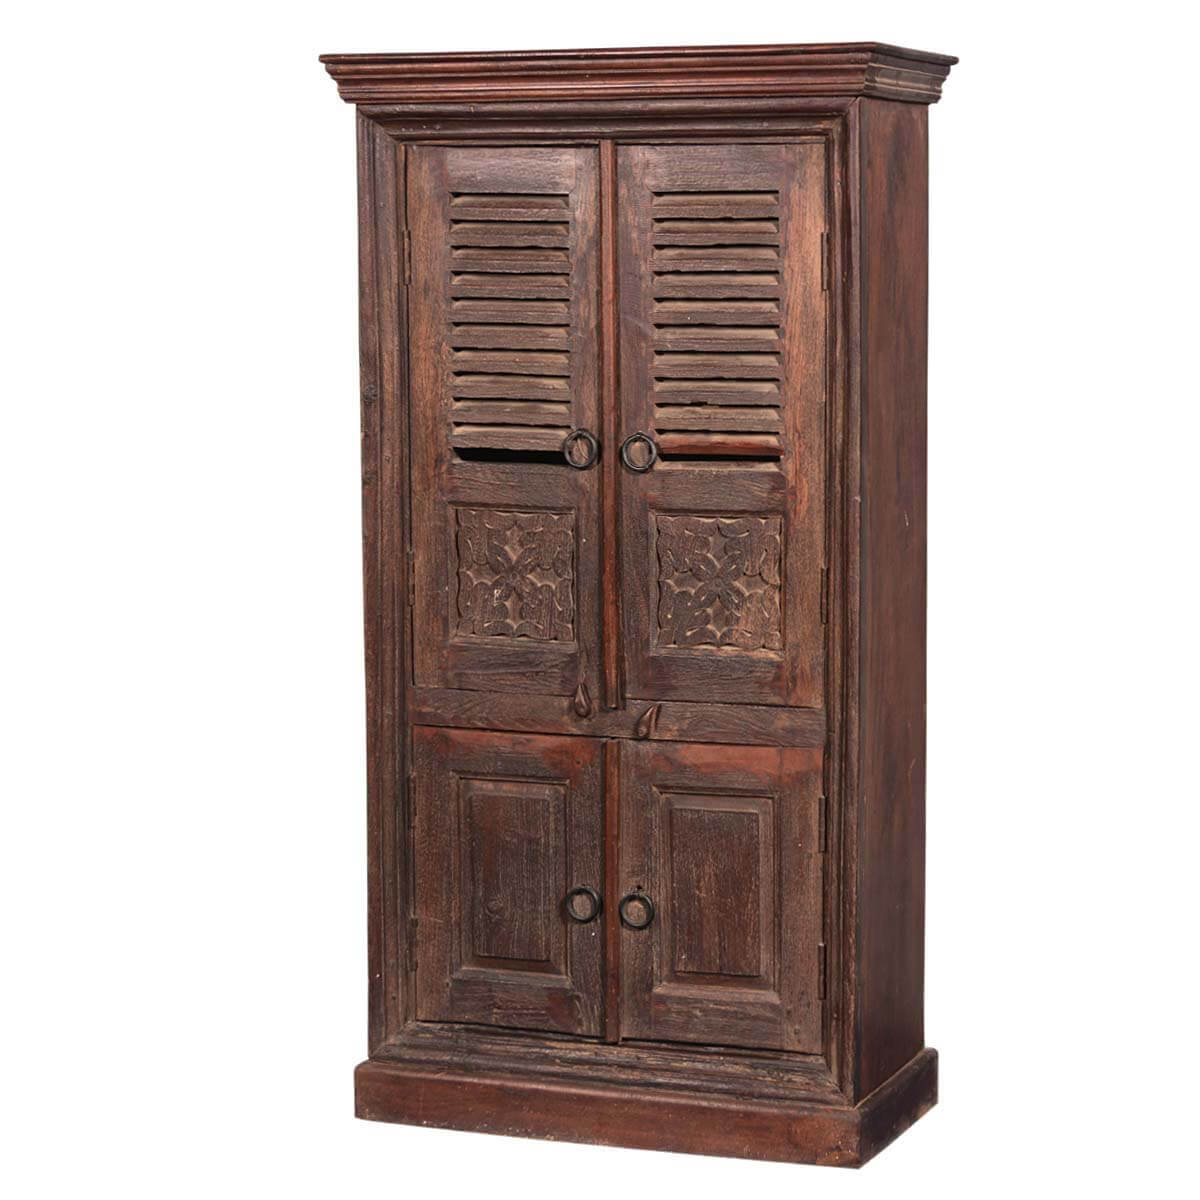 Aniwa rustic reclaimed wood handcrafted armoire